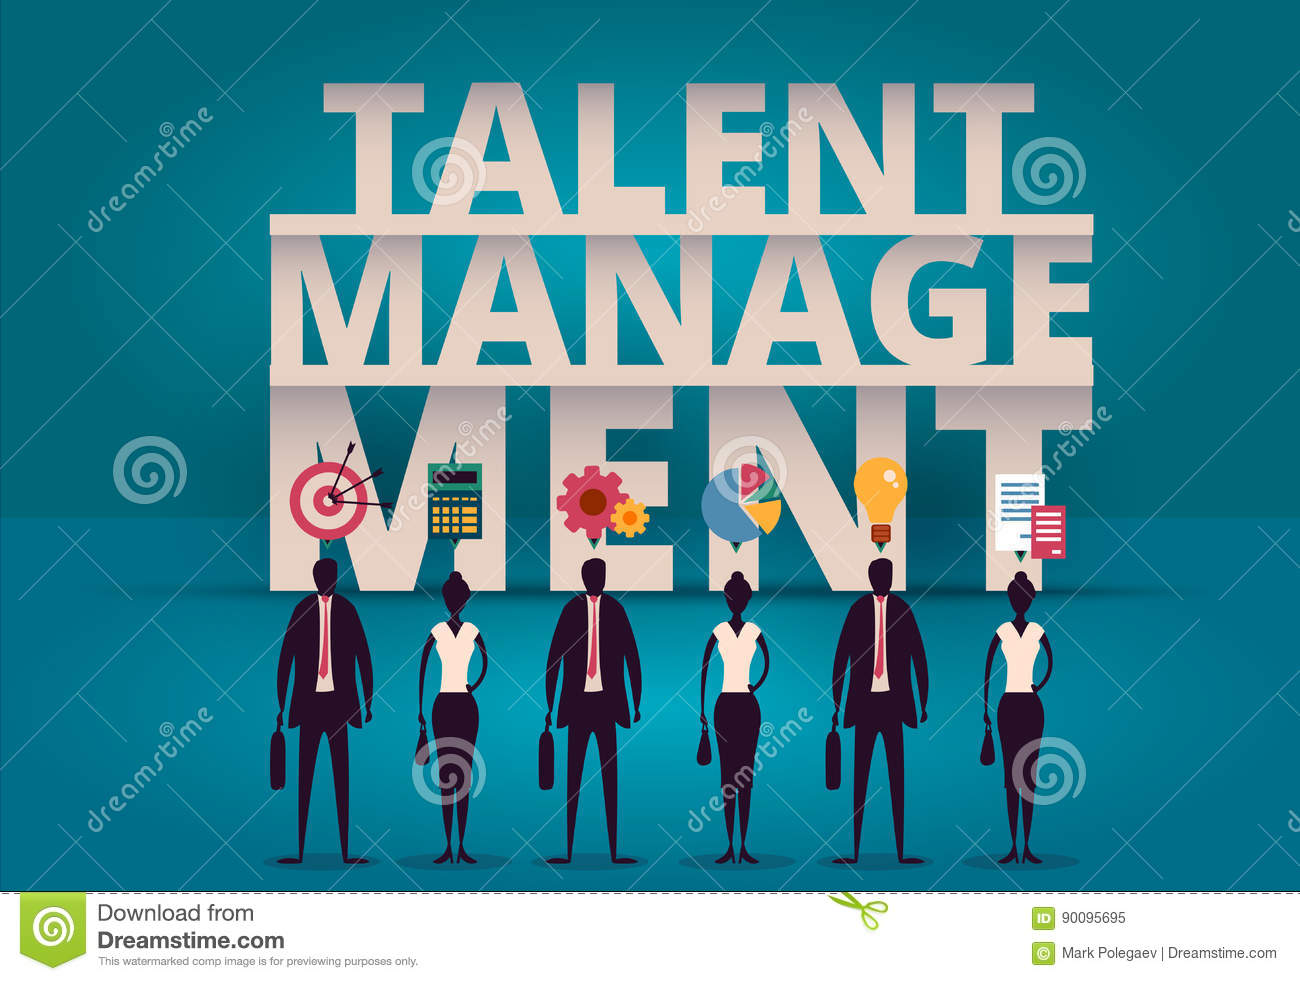 6 Tips for Business Management Talent in Nigeria